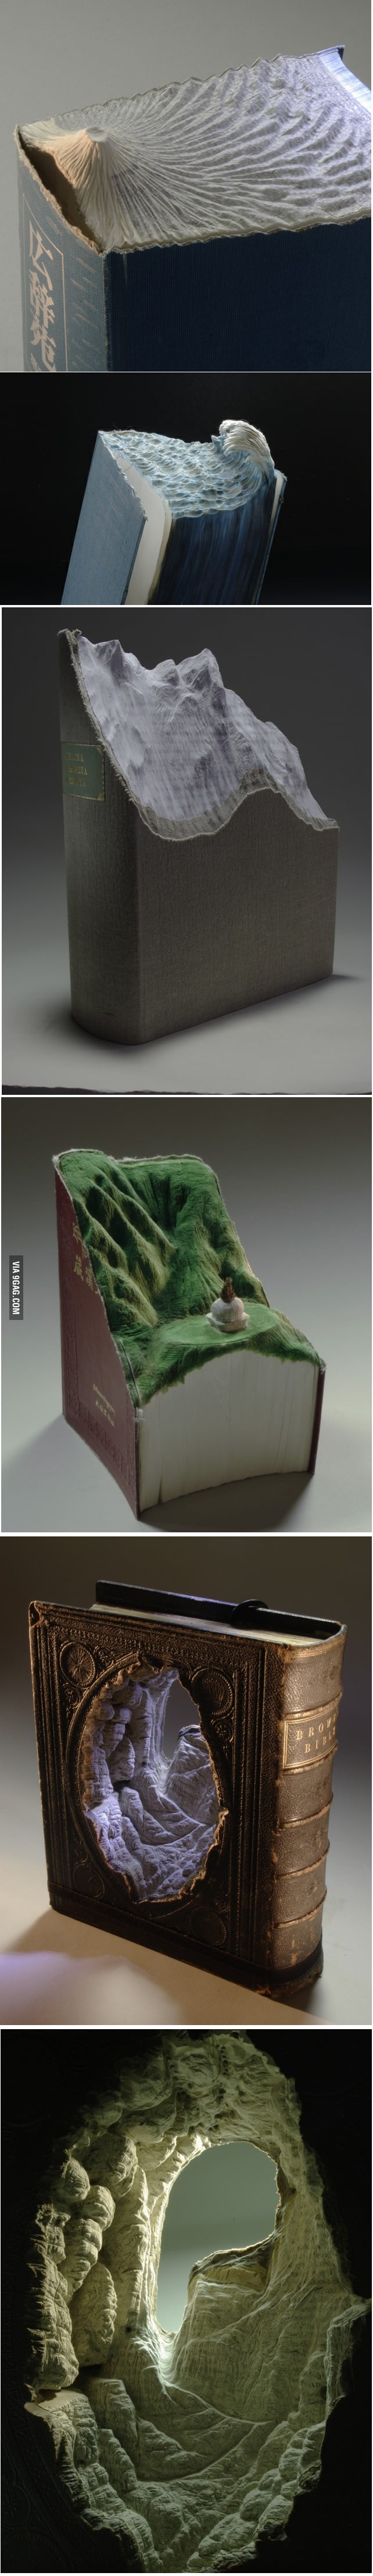 Landscapes carved on books!